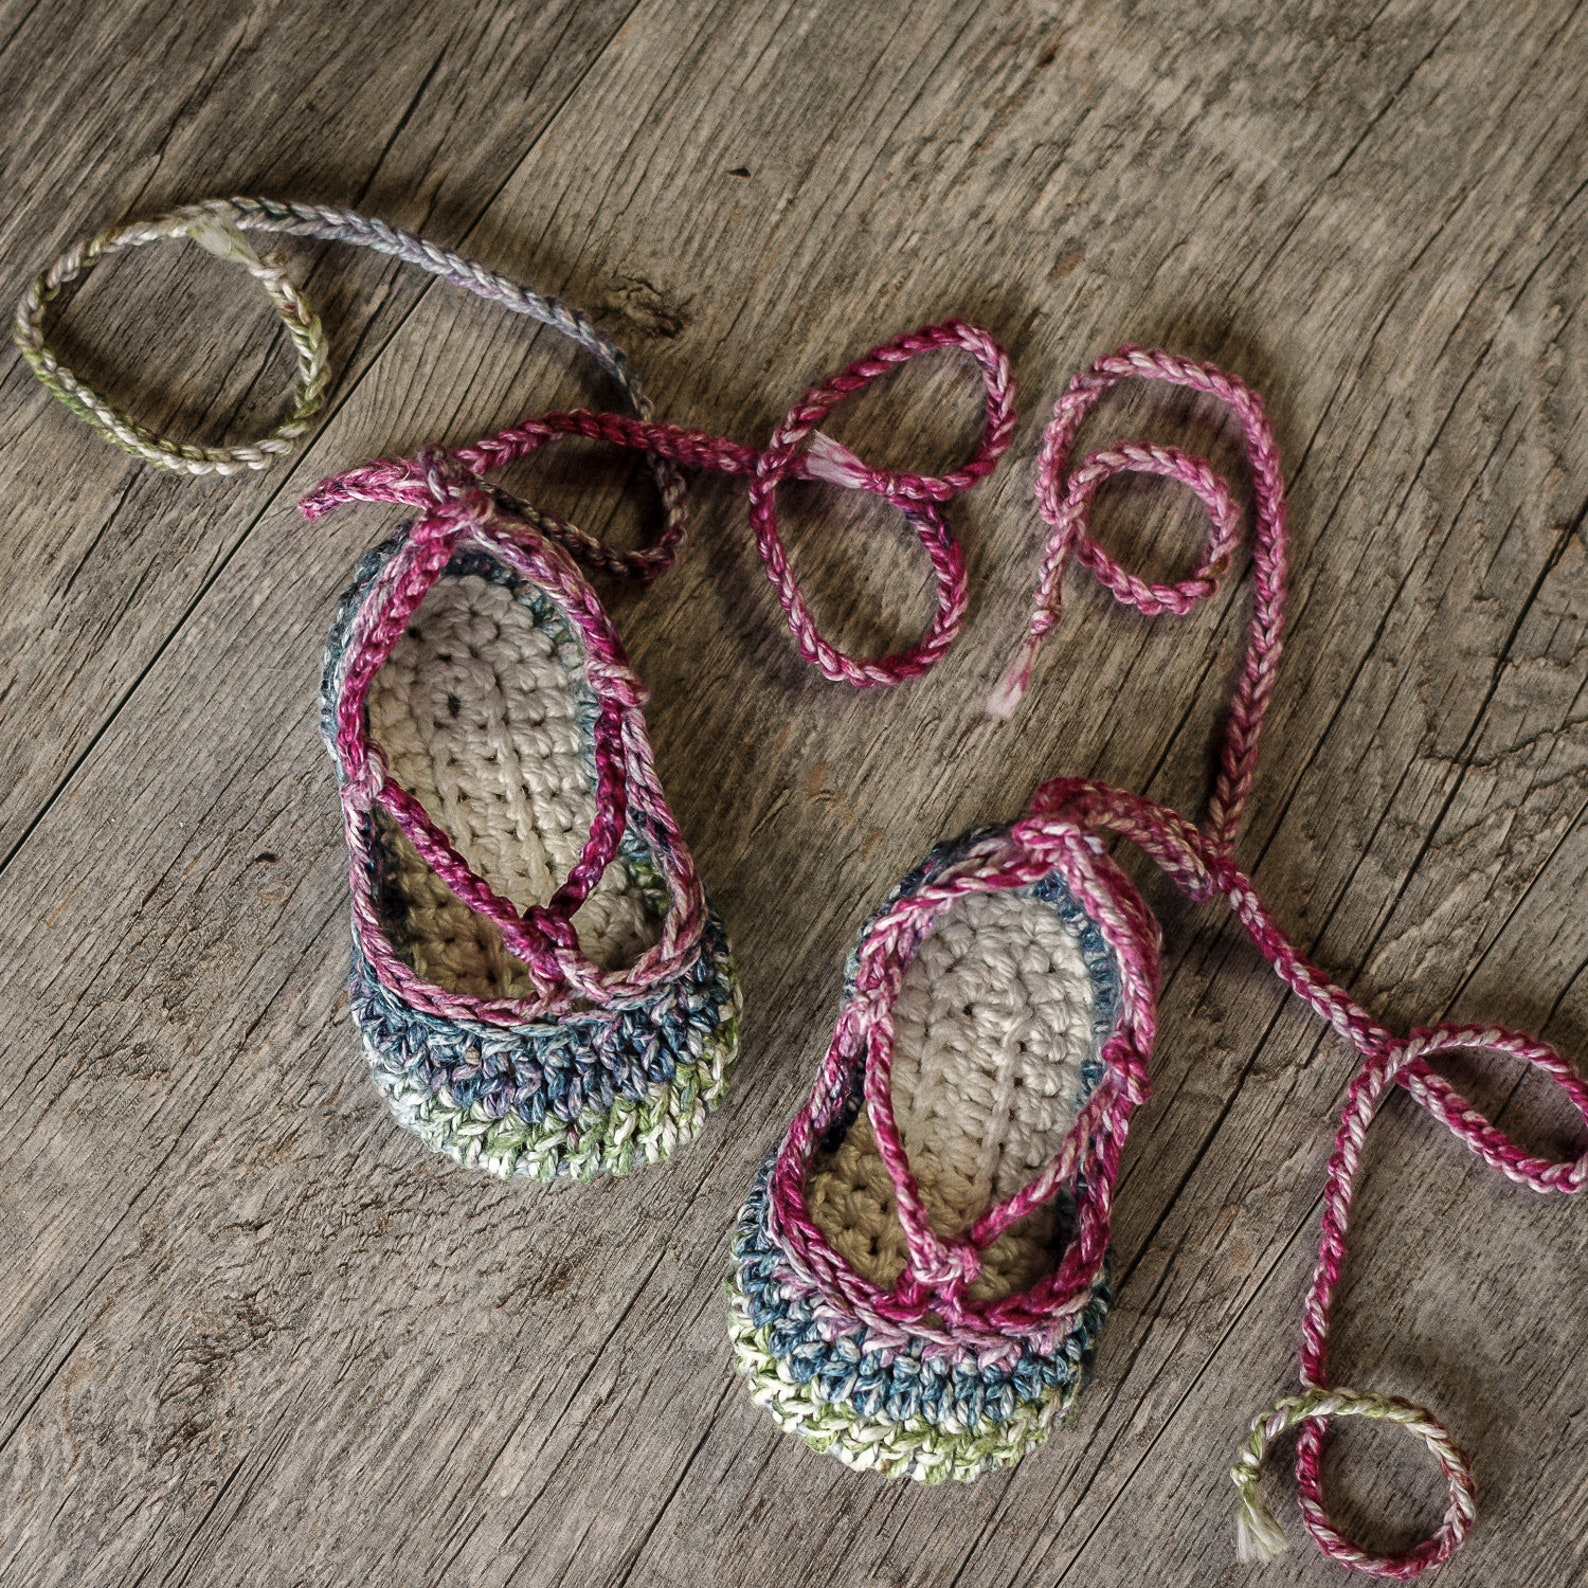 crochet pattern - strappy ballet flats - 3 variations included - baby - newborn, 3-6 and 6-12 months, instant download kc550